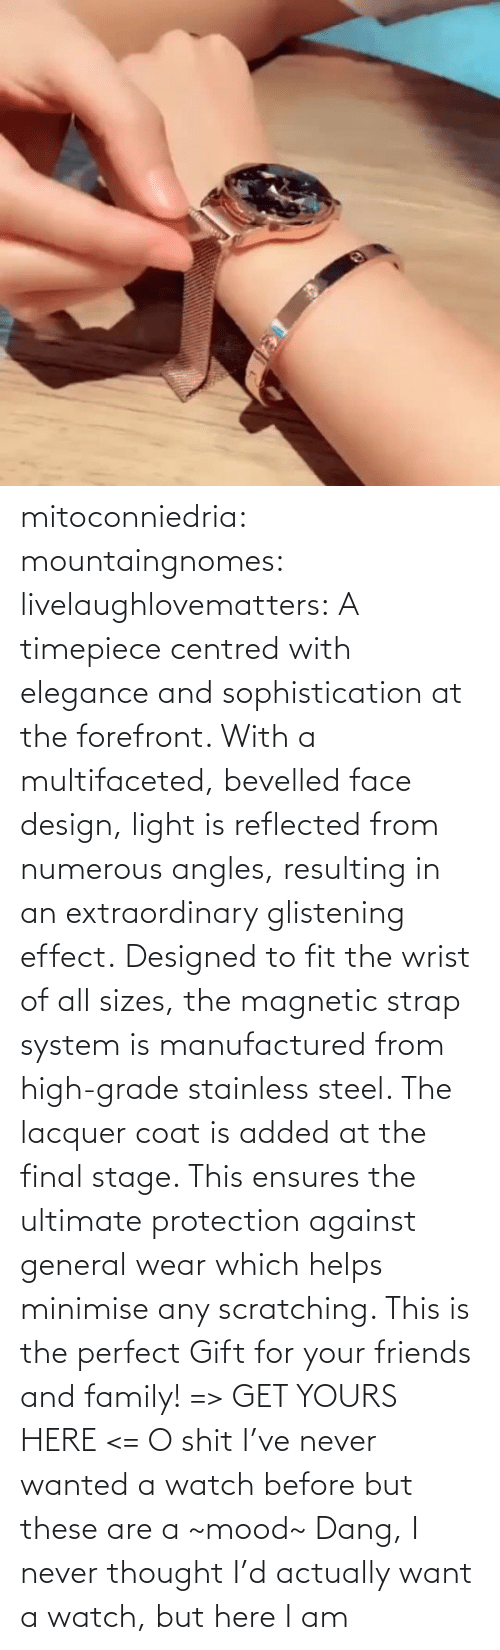 But: mitoconniedria: mountaingnomes:   livelaughlovematters:  A timepiece centred with elegance and sophistication at the forefront. With a multifaceted, bevelled face design, light is reflected from numerous angles, resulting in an extraordinary glistening effect. Designed to fit the wrist of all sizes, the magnetic strap system is manufactured from high-grade stainless steel. The lacquer coat is added at the final stage. This ensures the ultimate protection against general wear which helps minimise any scratching. This is the perfect Gift for your friends and family! => GET YOURS HERE <=  O shit I've never wanted a watch before but these are a ~mood~    Dang, I never thought I'd actually want a watch, but here I am